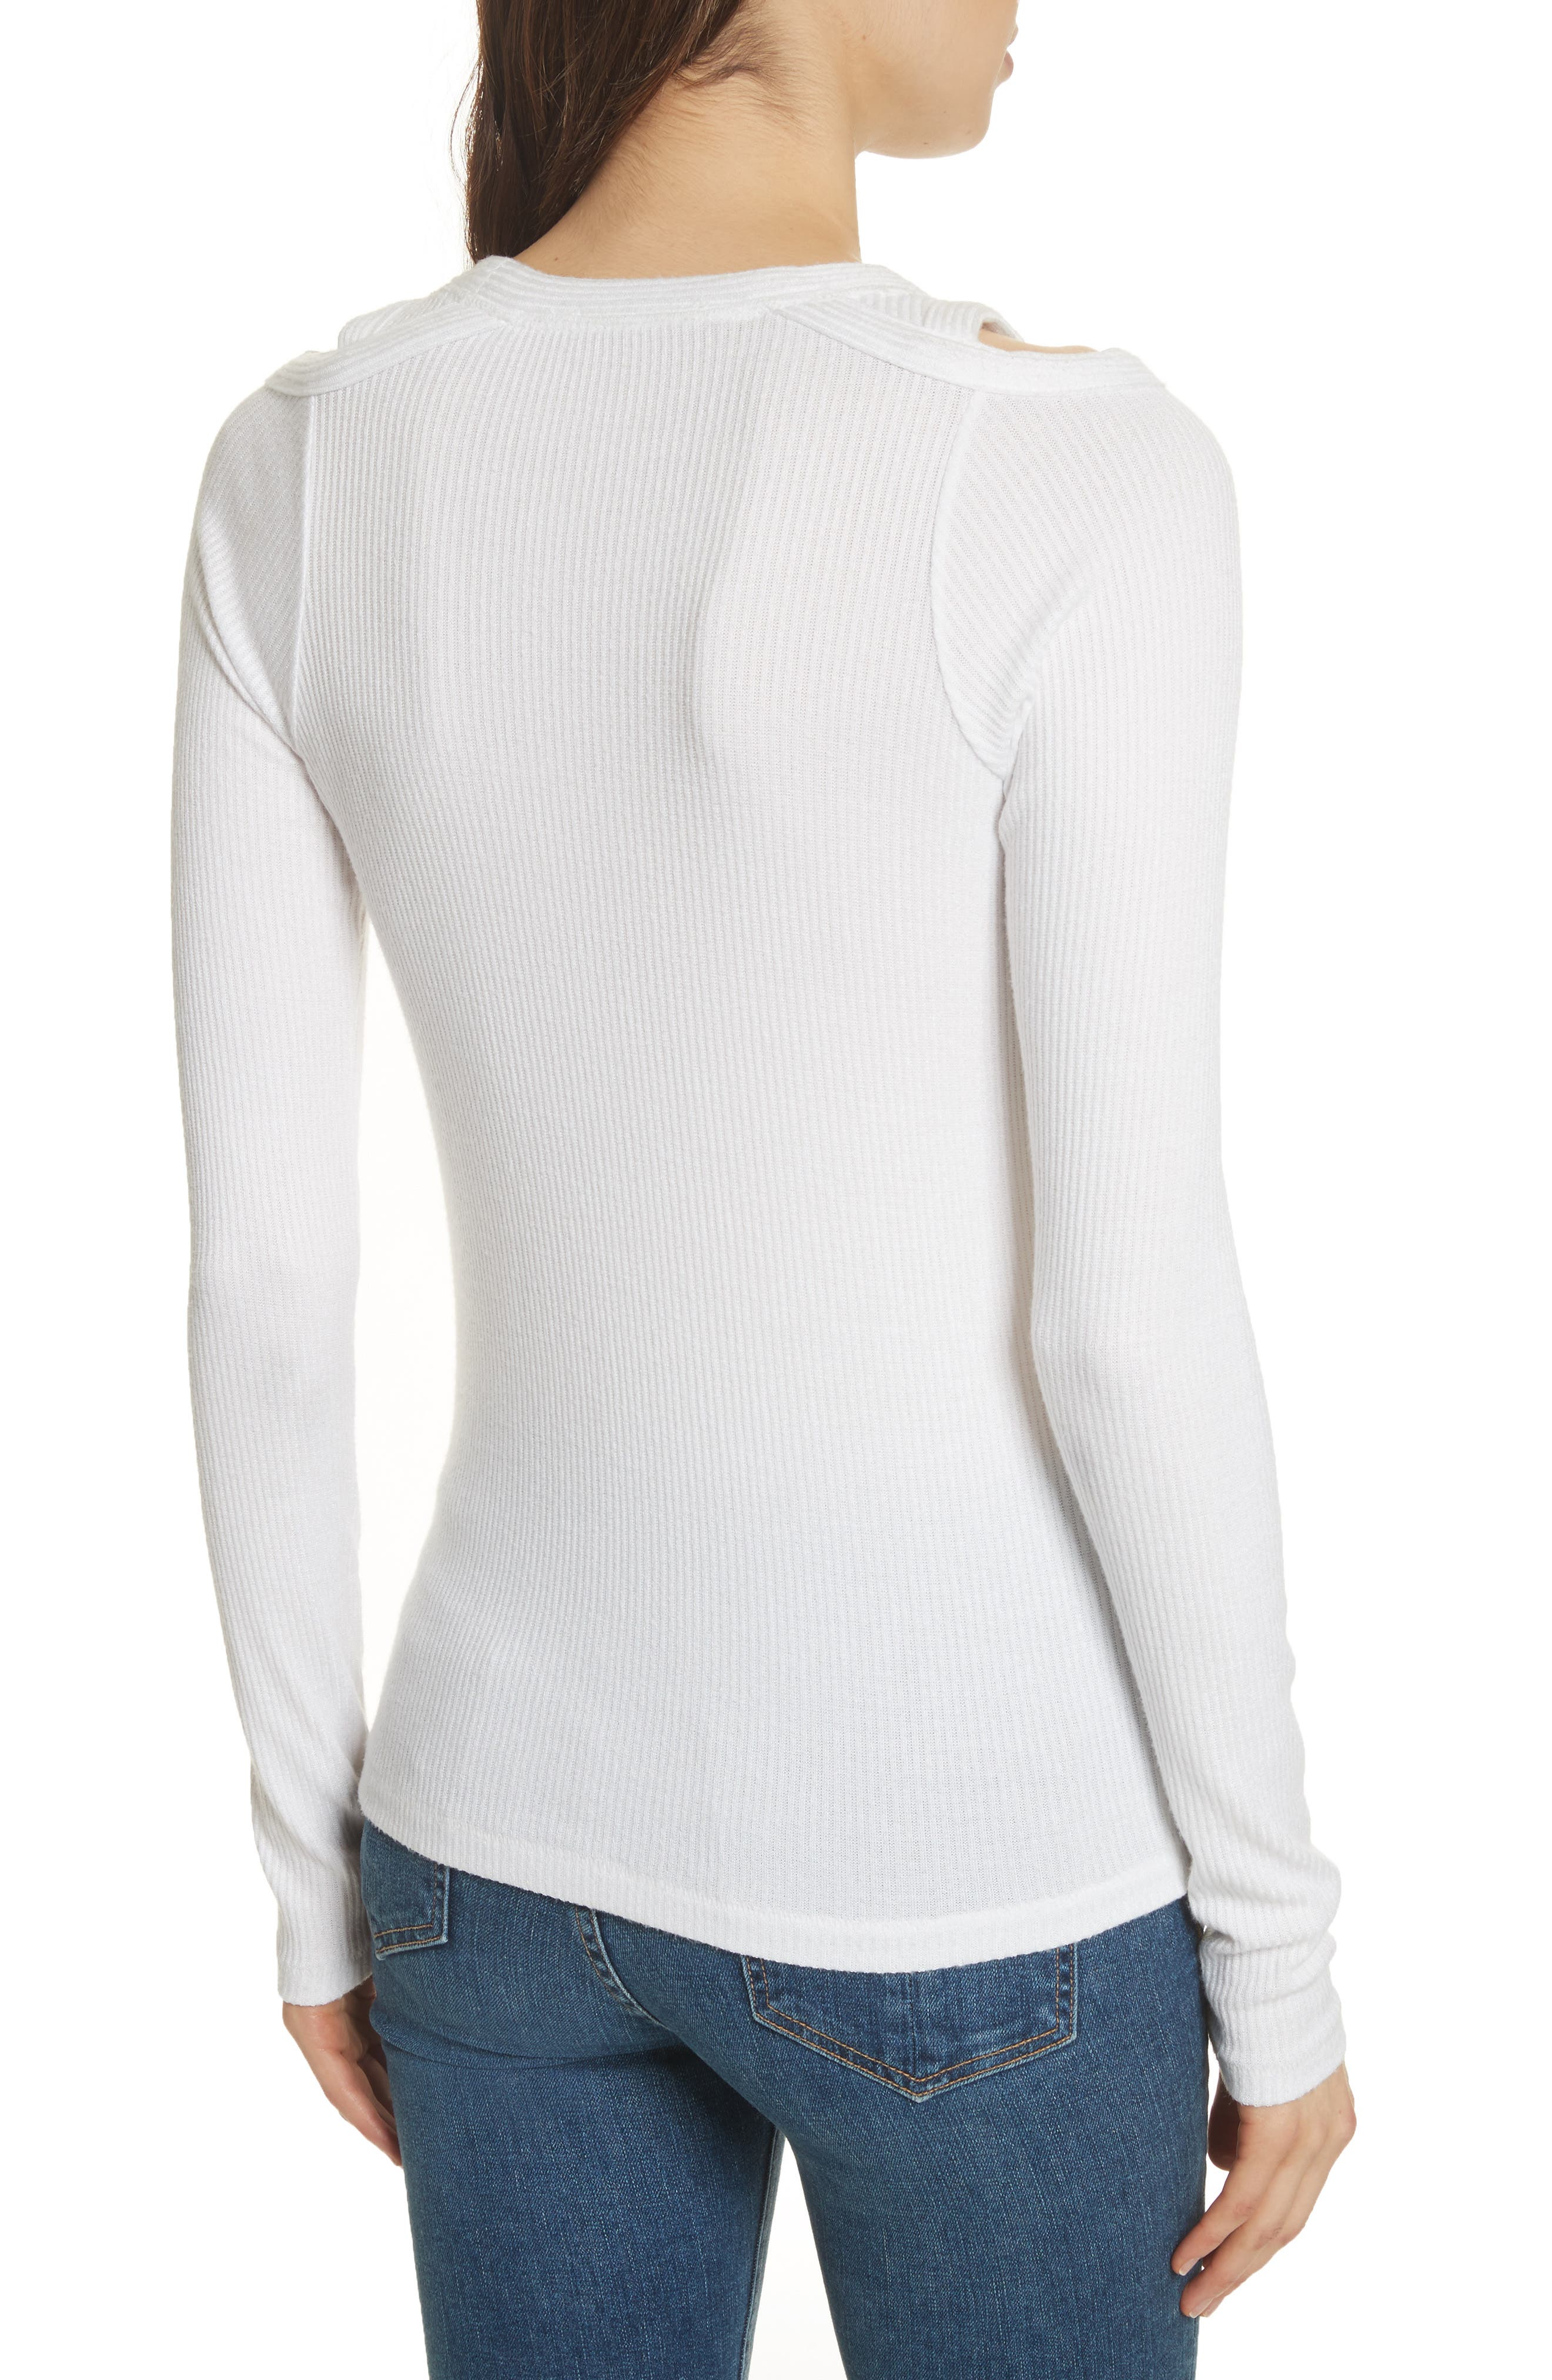 Rosalind Cutout Ribbed Top,                             Alternate thumbnail 2, color,                             White